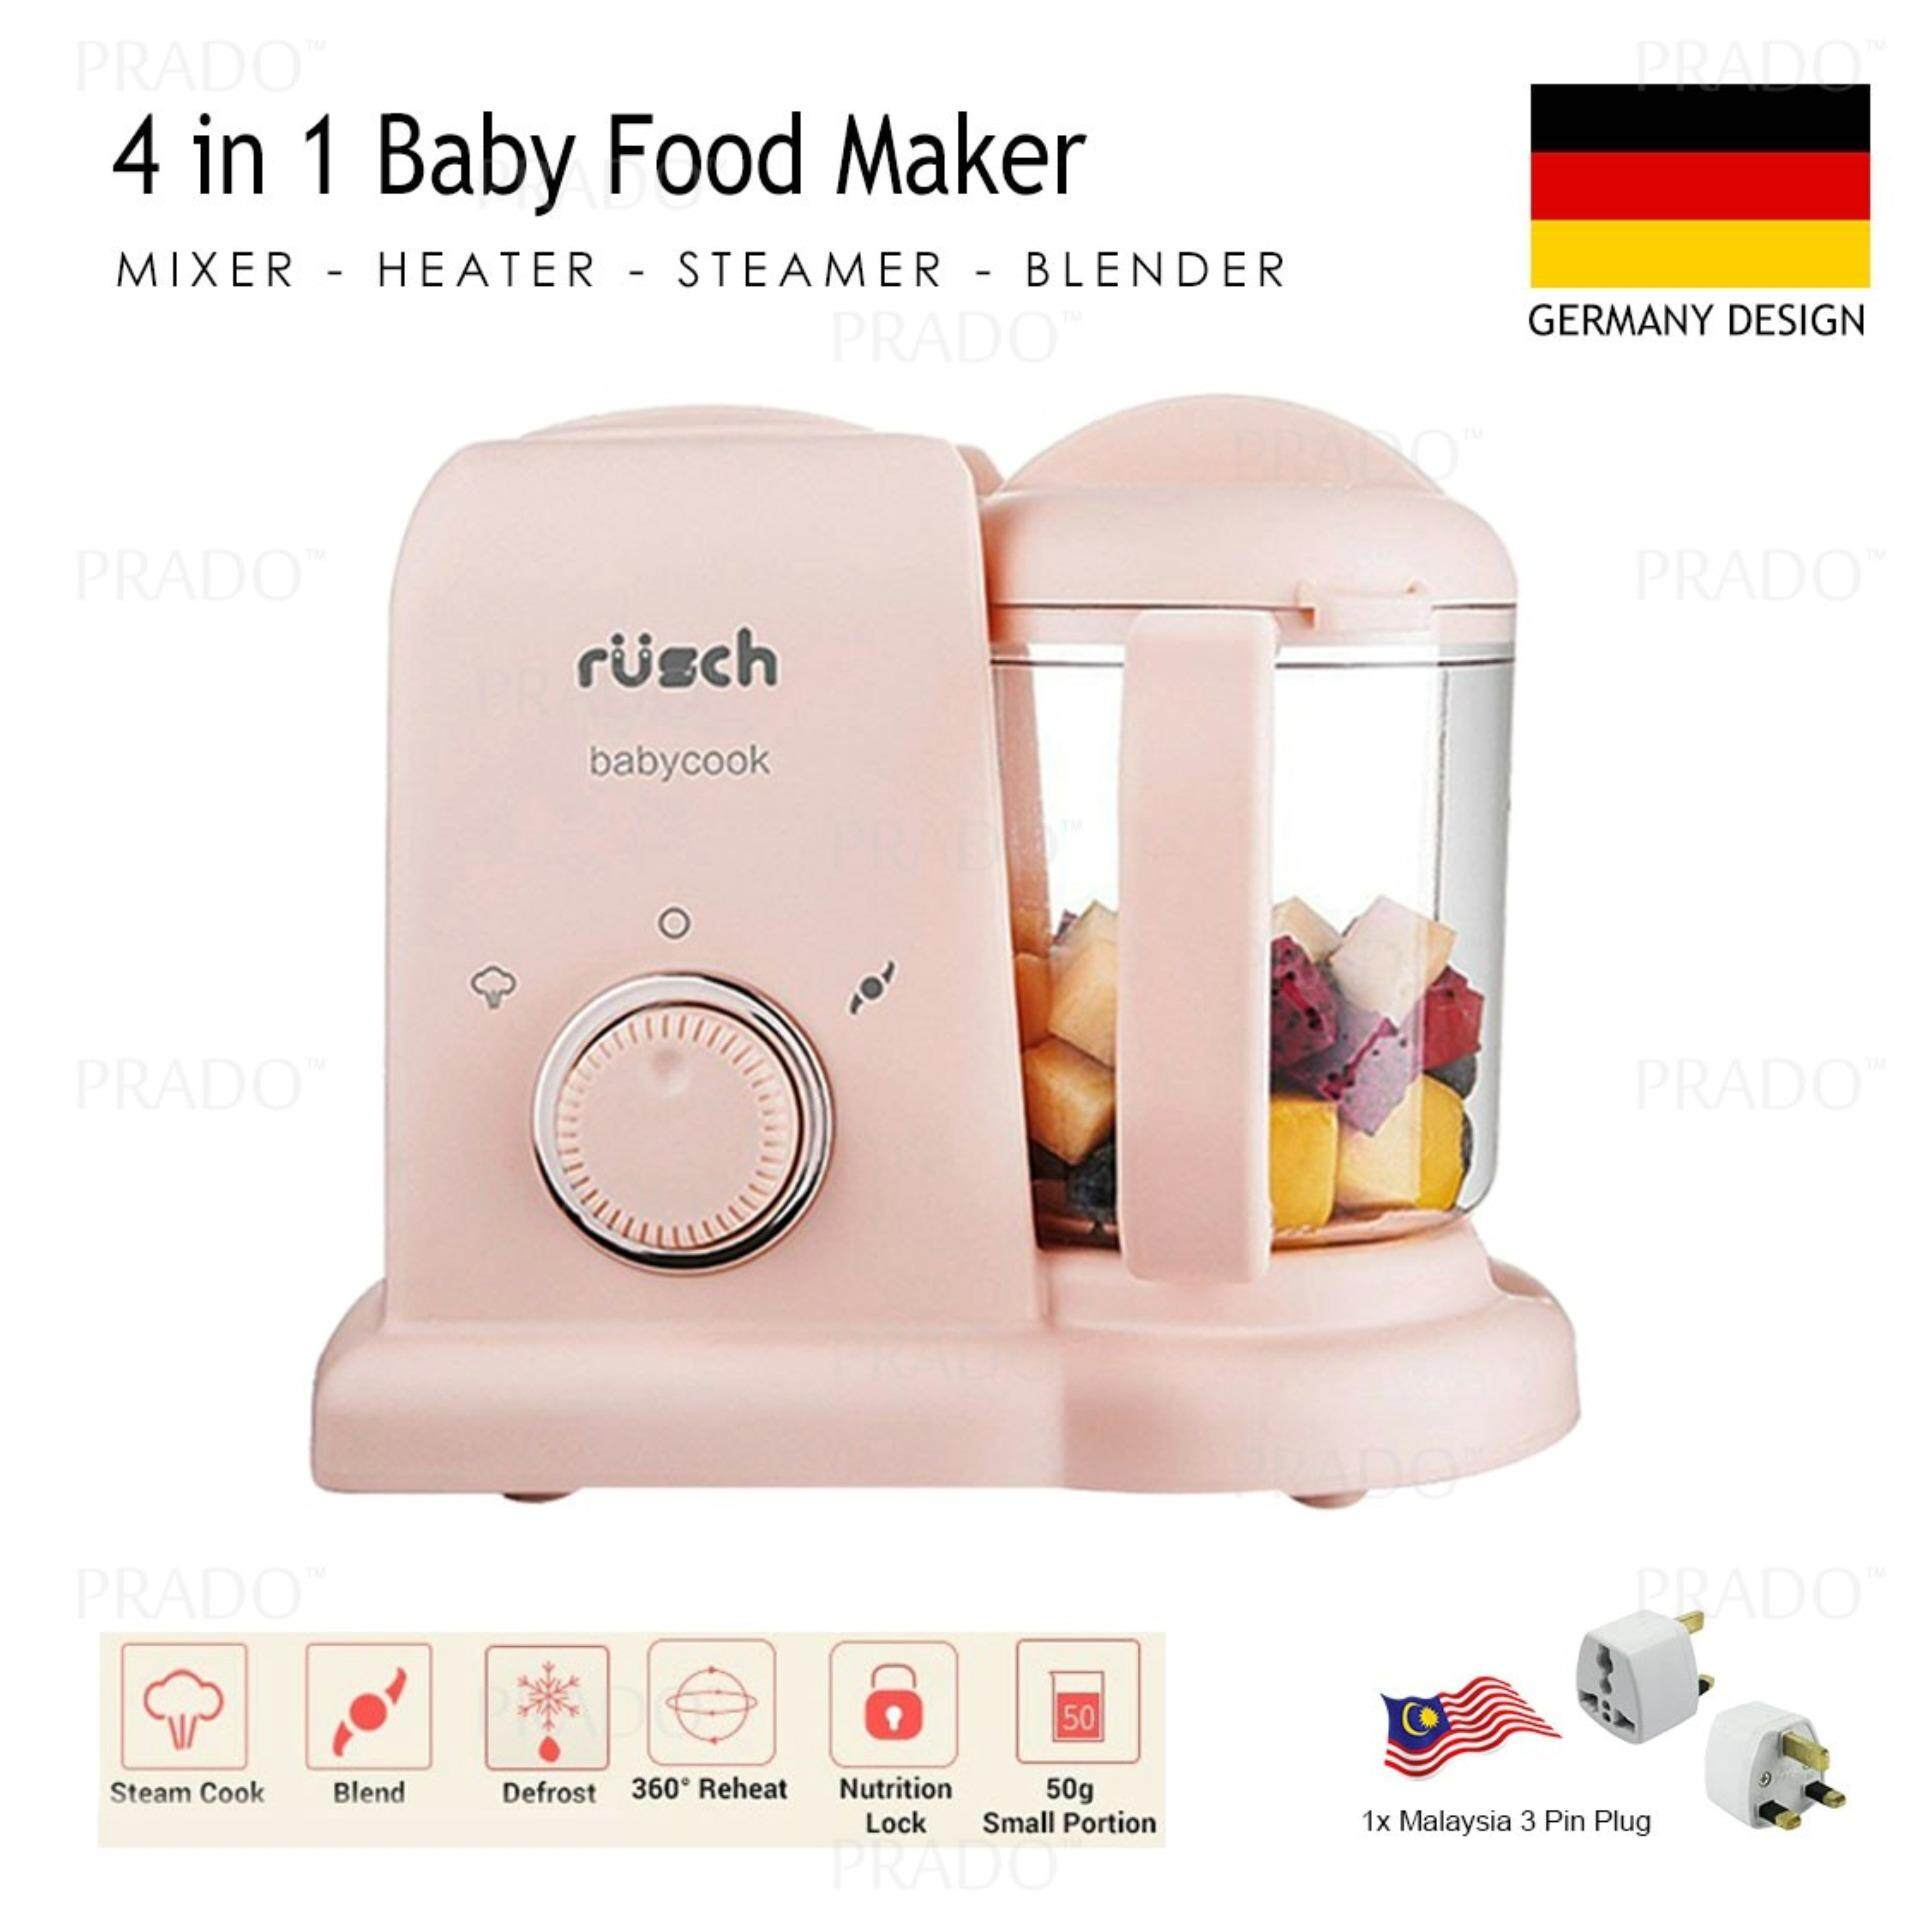 PRADO Malaysia Germany Rusch 4 in 1 Baby Food Maker Mixer Grinder Heater Steamer Blender Babycook baby food processor image on snachetto.com